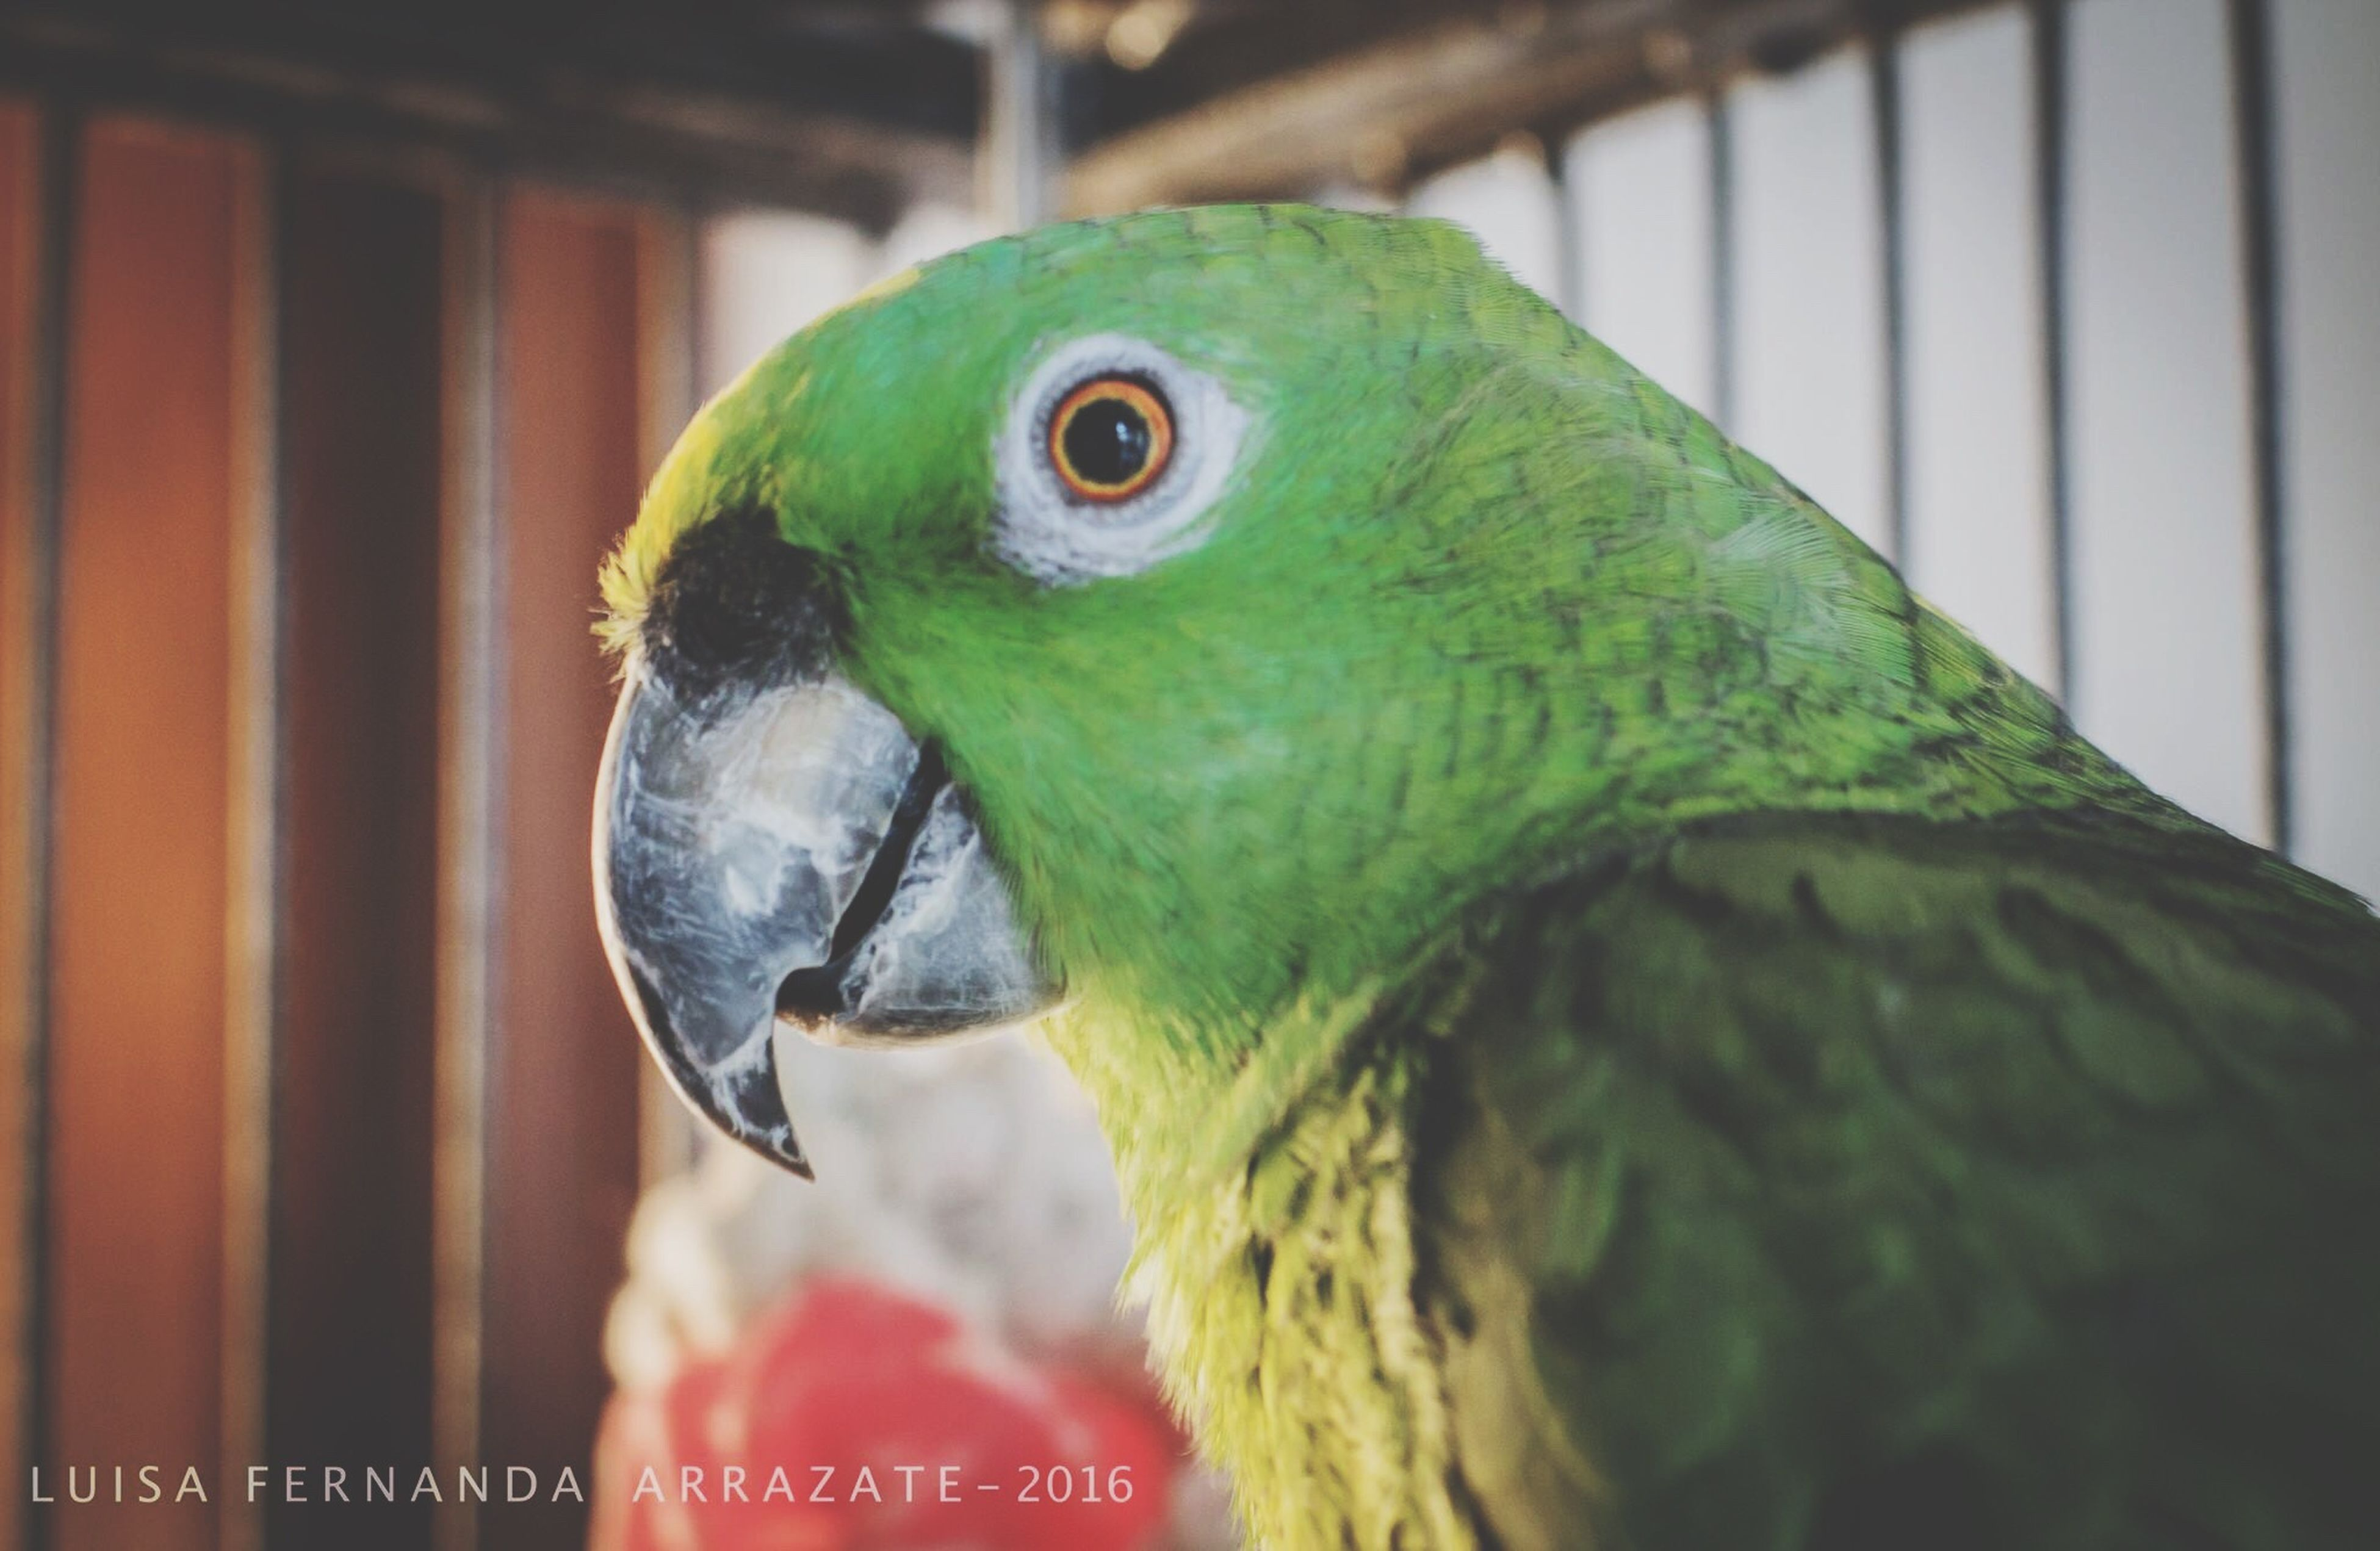 bird, one animal, wildlife, close-up, animals in the wild, beak, green color, parrot, focus on foreground, looking, nature, zoology, beauty in nature, green, avian, vibrant color, no people